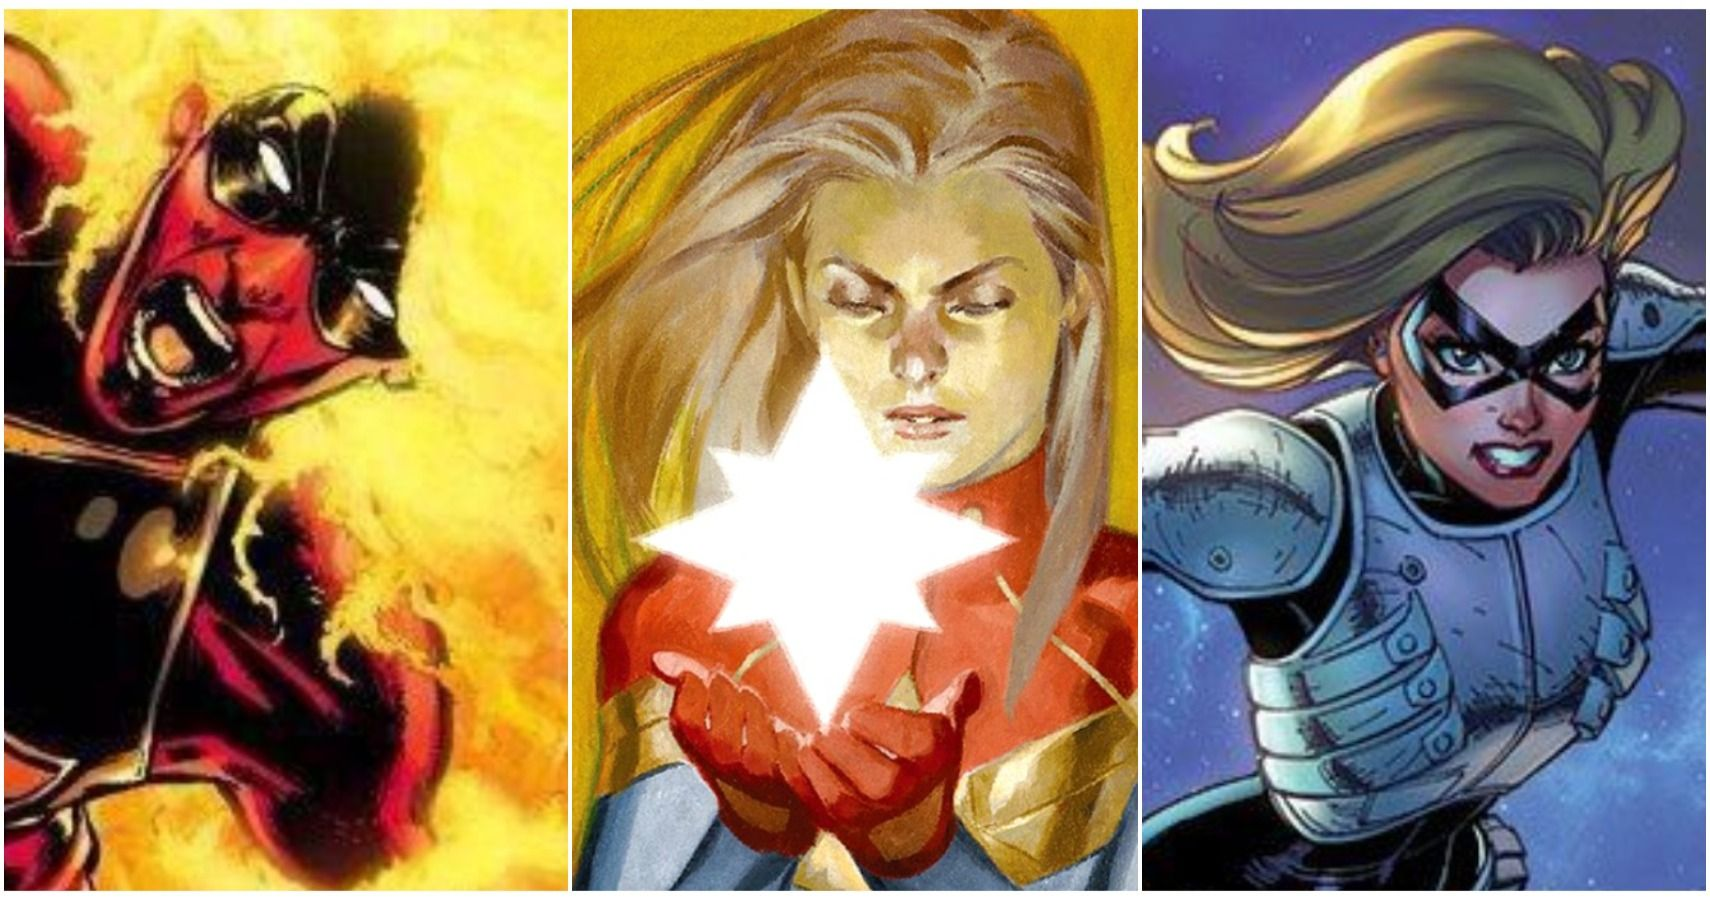 Captain Marvel 5 Best Costumes That Made Her Look Cool 5 Worst That Were Just Lame It seems like every time her series is rebooted, or a new author takes the helm, a related: captain marvel 5 best costumes that